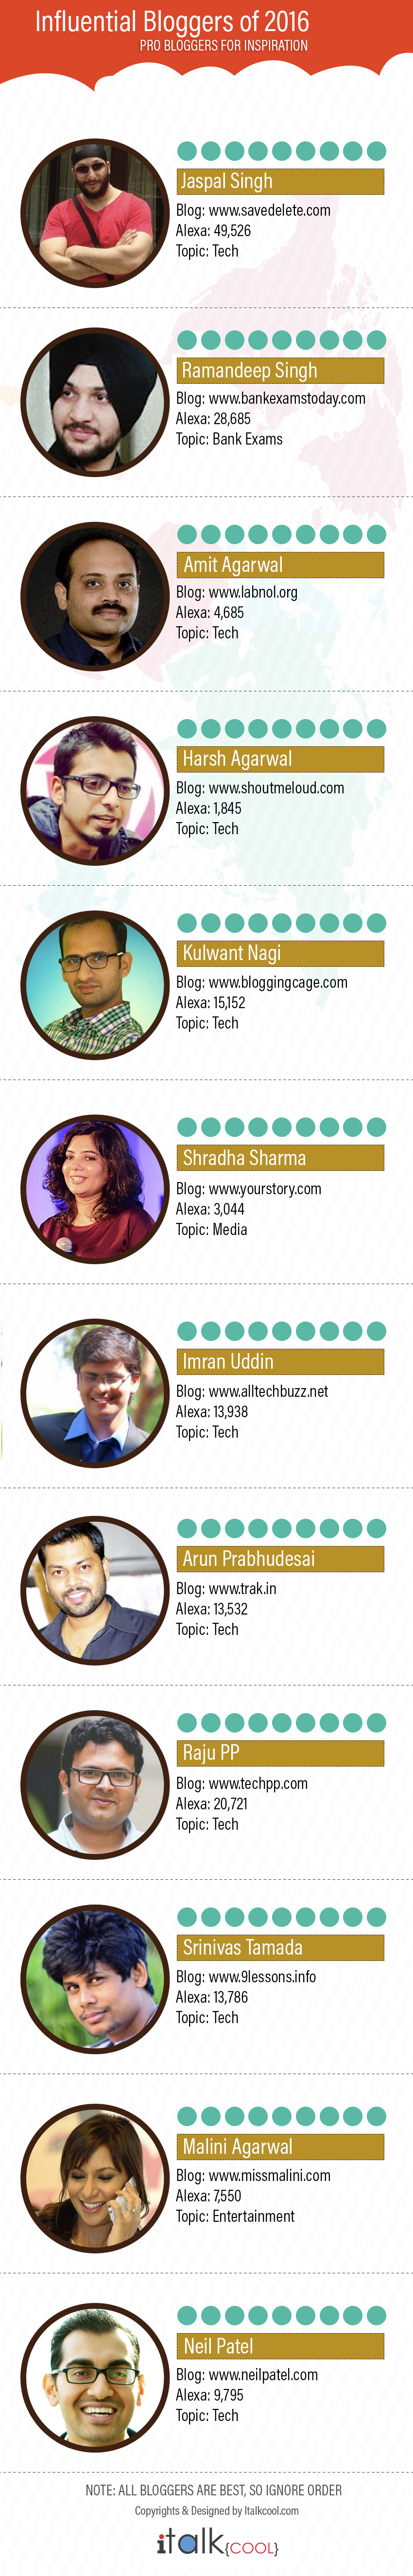 Influential Bloggers of 2016 Infographic